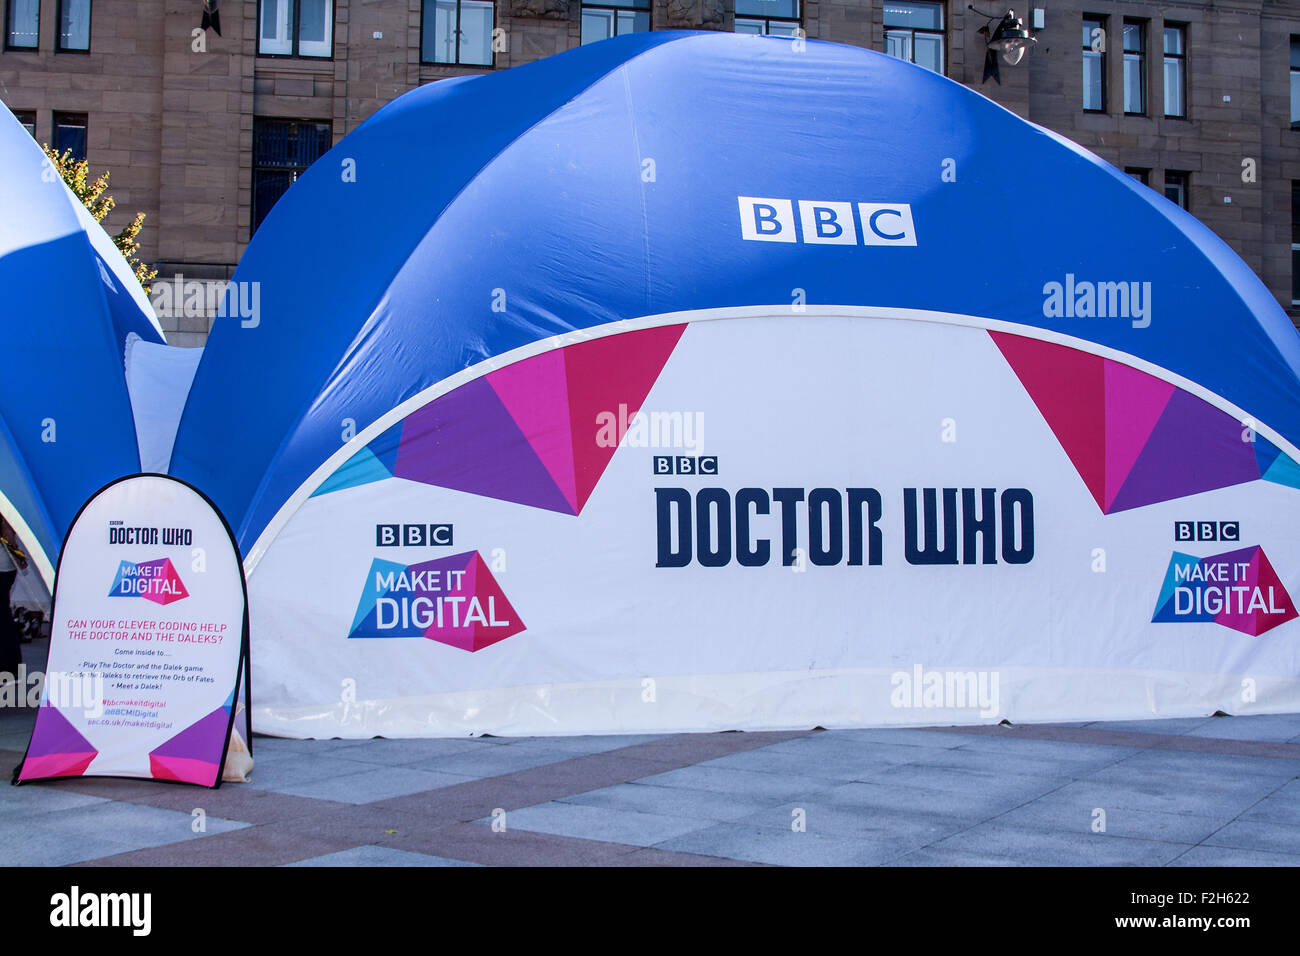 """Dundee, Tayside, Scotland, UK, 19th September 2015. Crowds gather on opening day of The BBC """"Make It Digital"""" weekend - Stock Image"""